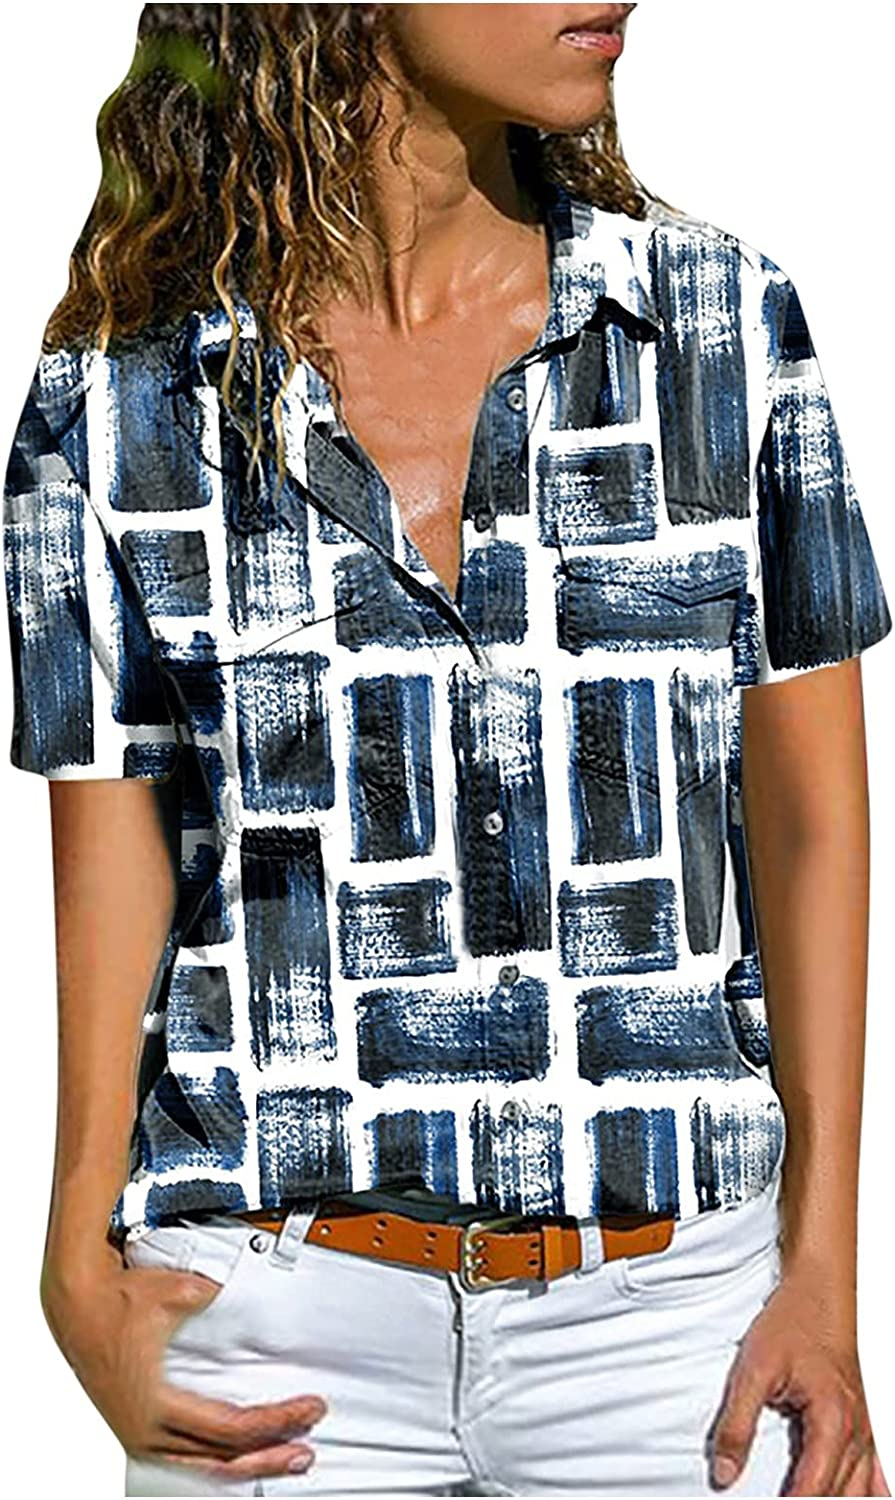 Fankle Womens Summer Casual Tops V Neck Color Block Tunic Short Sleeve Button Down Shirts Blouse